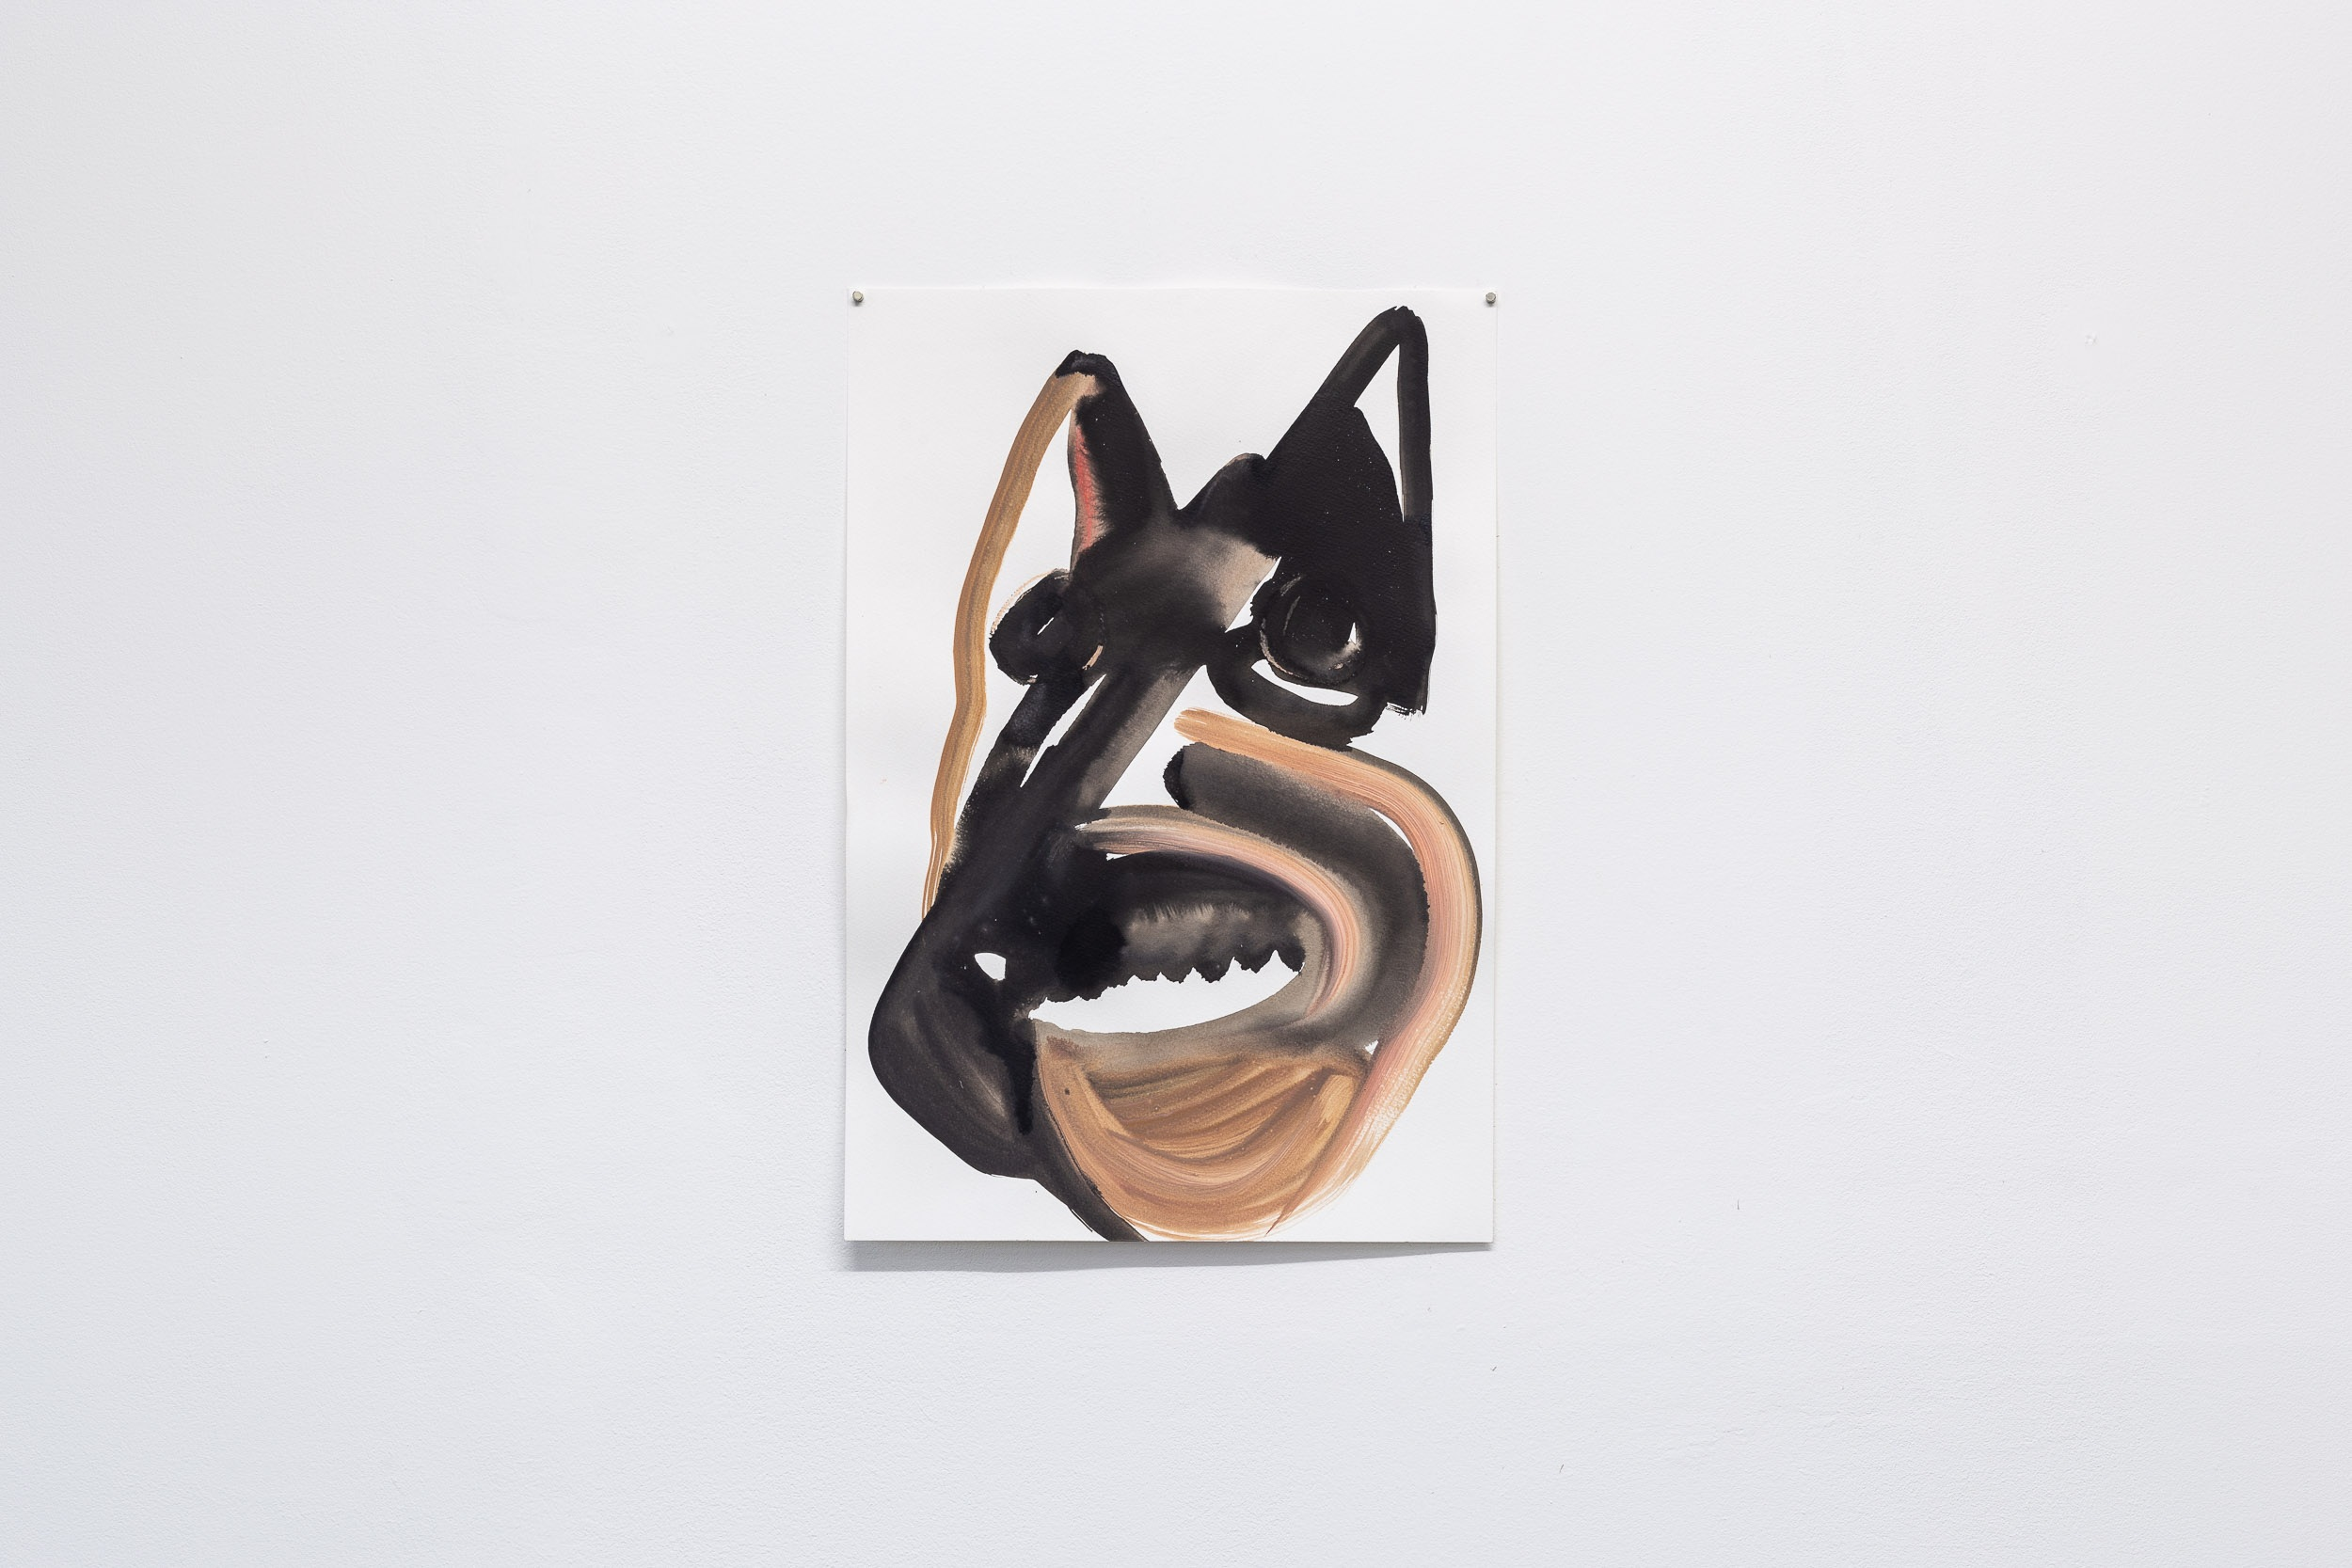 Megan Rooney,  Untitled (Old Baggy Root),  2019, acrylic, ink and pencil on paper, each 76 x 56 cm Photo: Kilian Bannwart